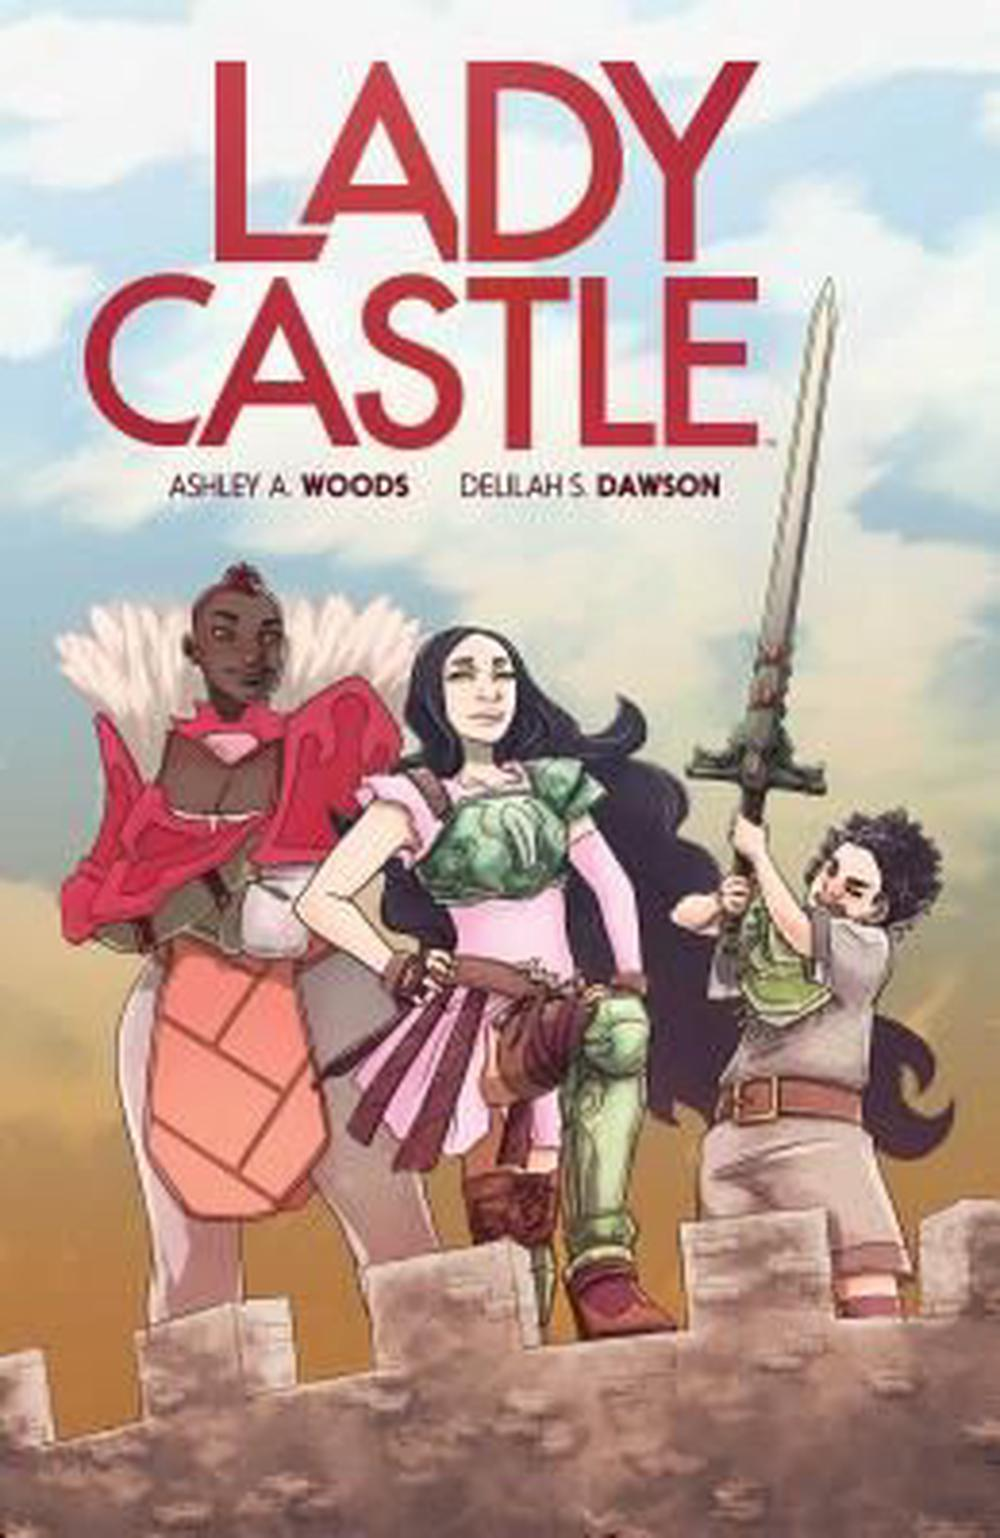 Ladycastle by Delilah S. Dawson, ISBN: 9781684150328